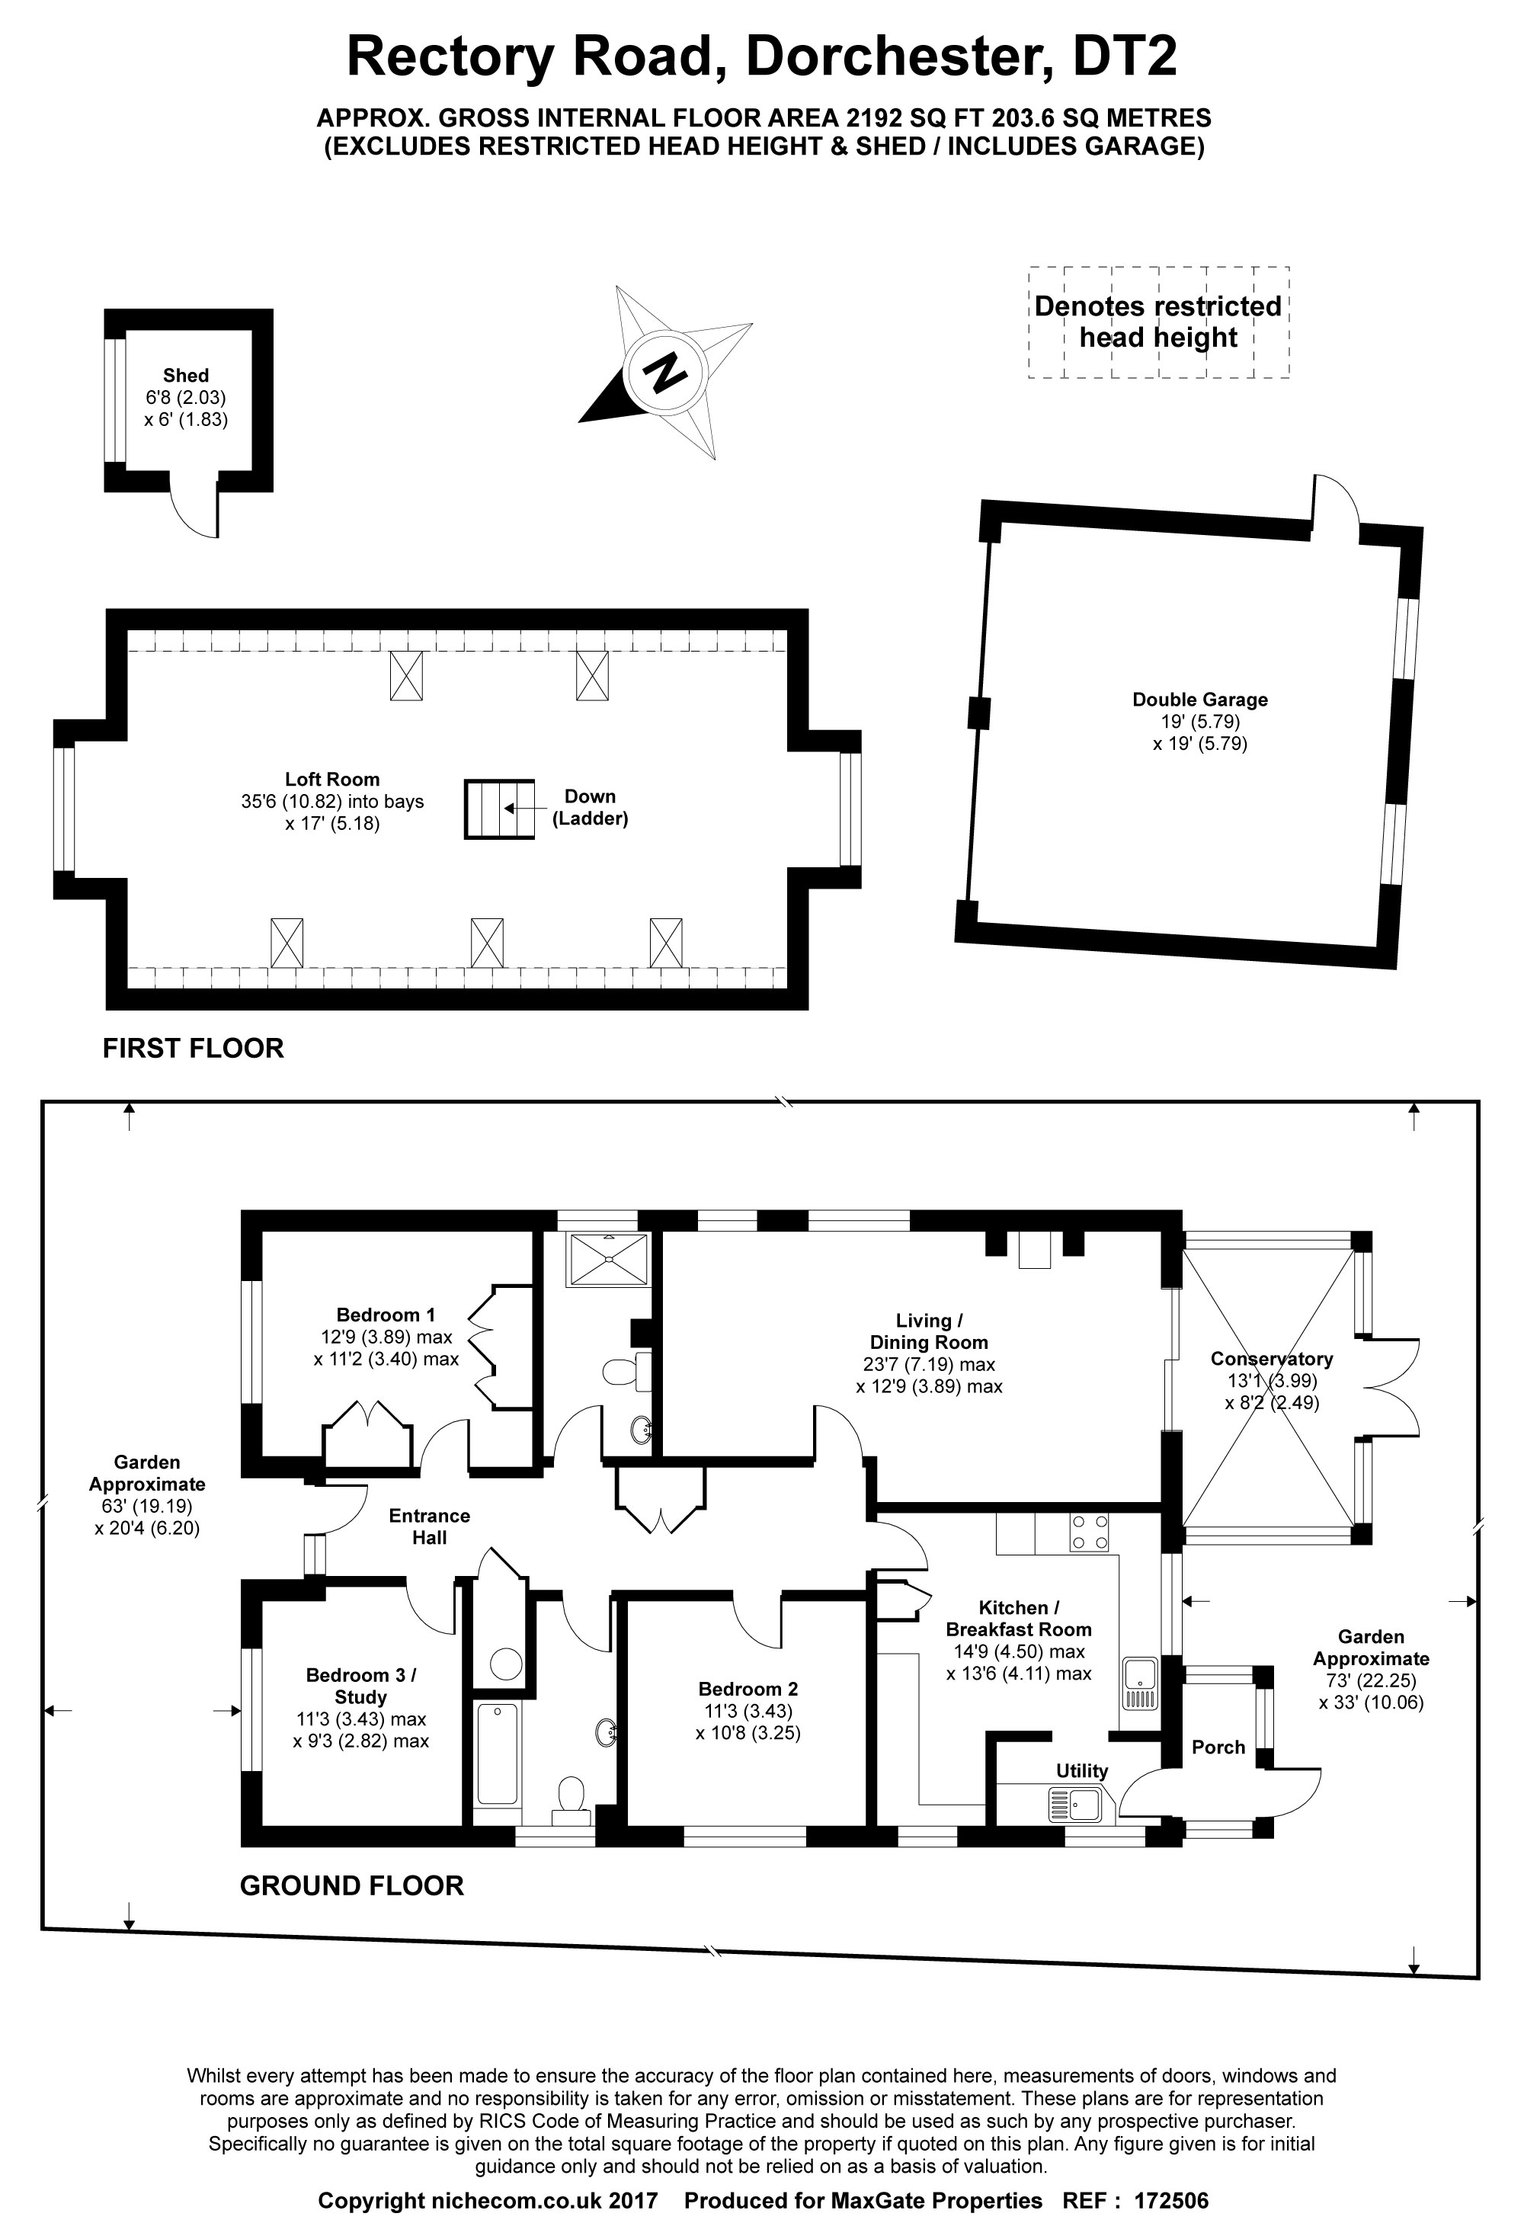 Floorplan for 20 Rectory Road